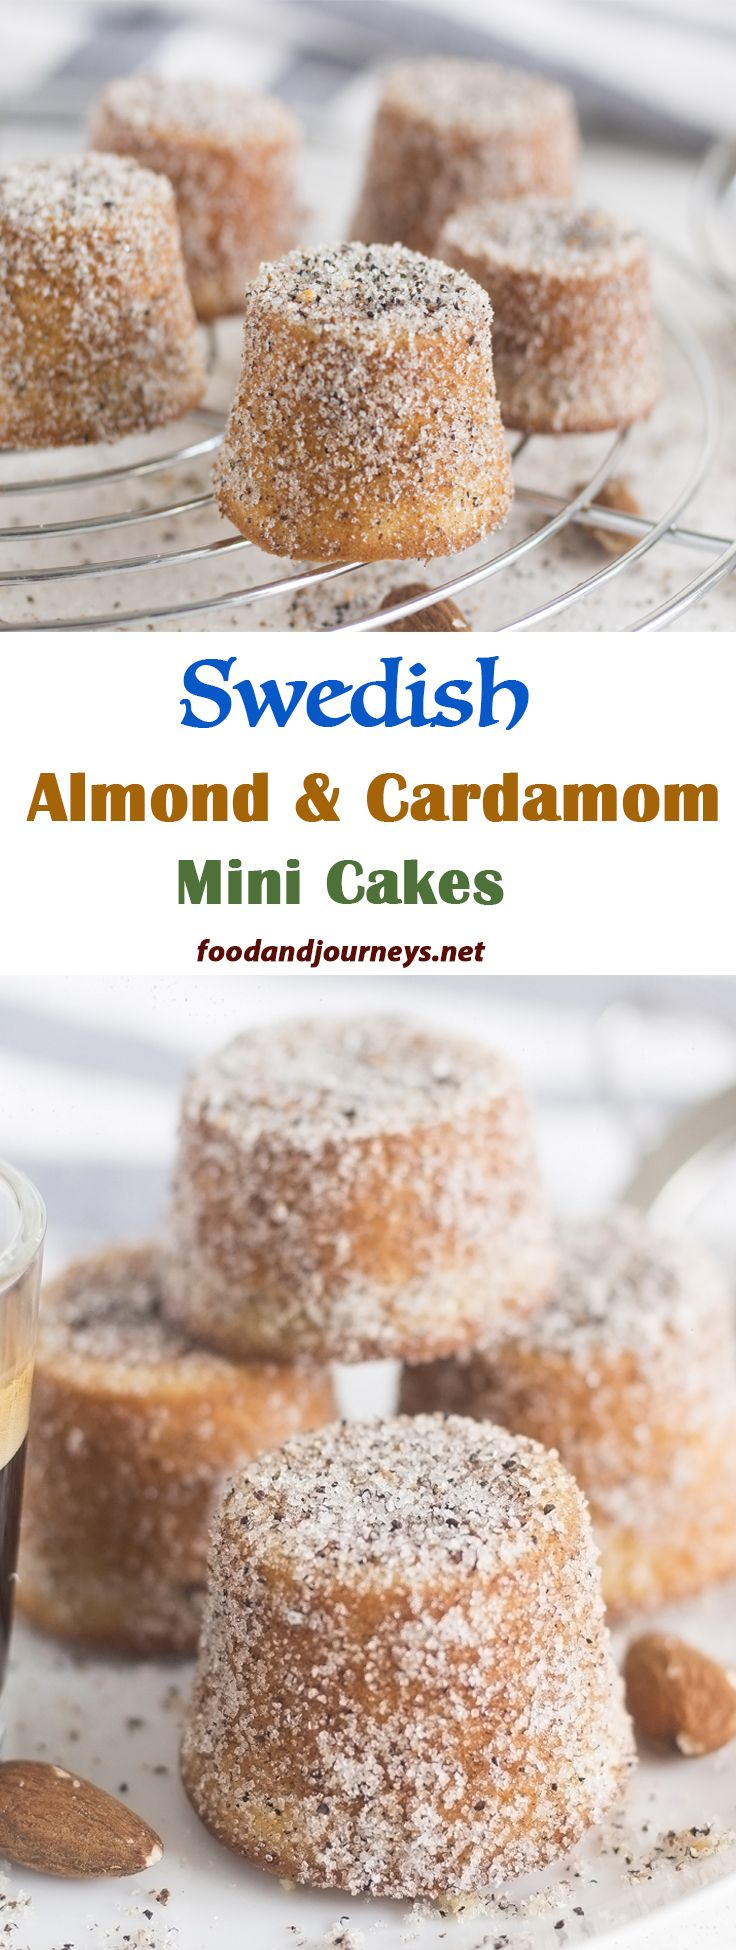 You get the taste of almond and cardamom in every bite of this soft and delicious cake. They come in small sizes too, so you can eat as many as you want! Perfect for desserts or snacks!